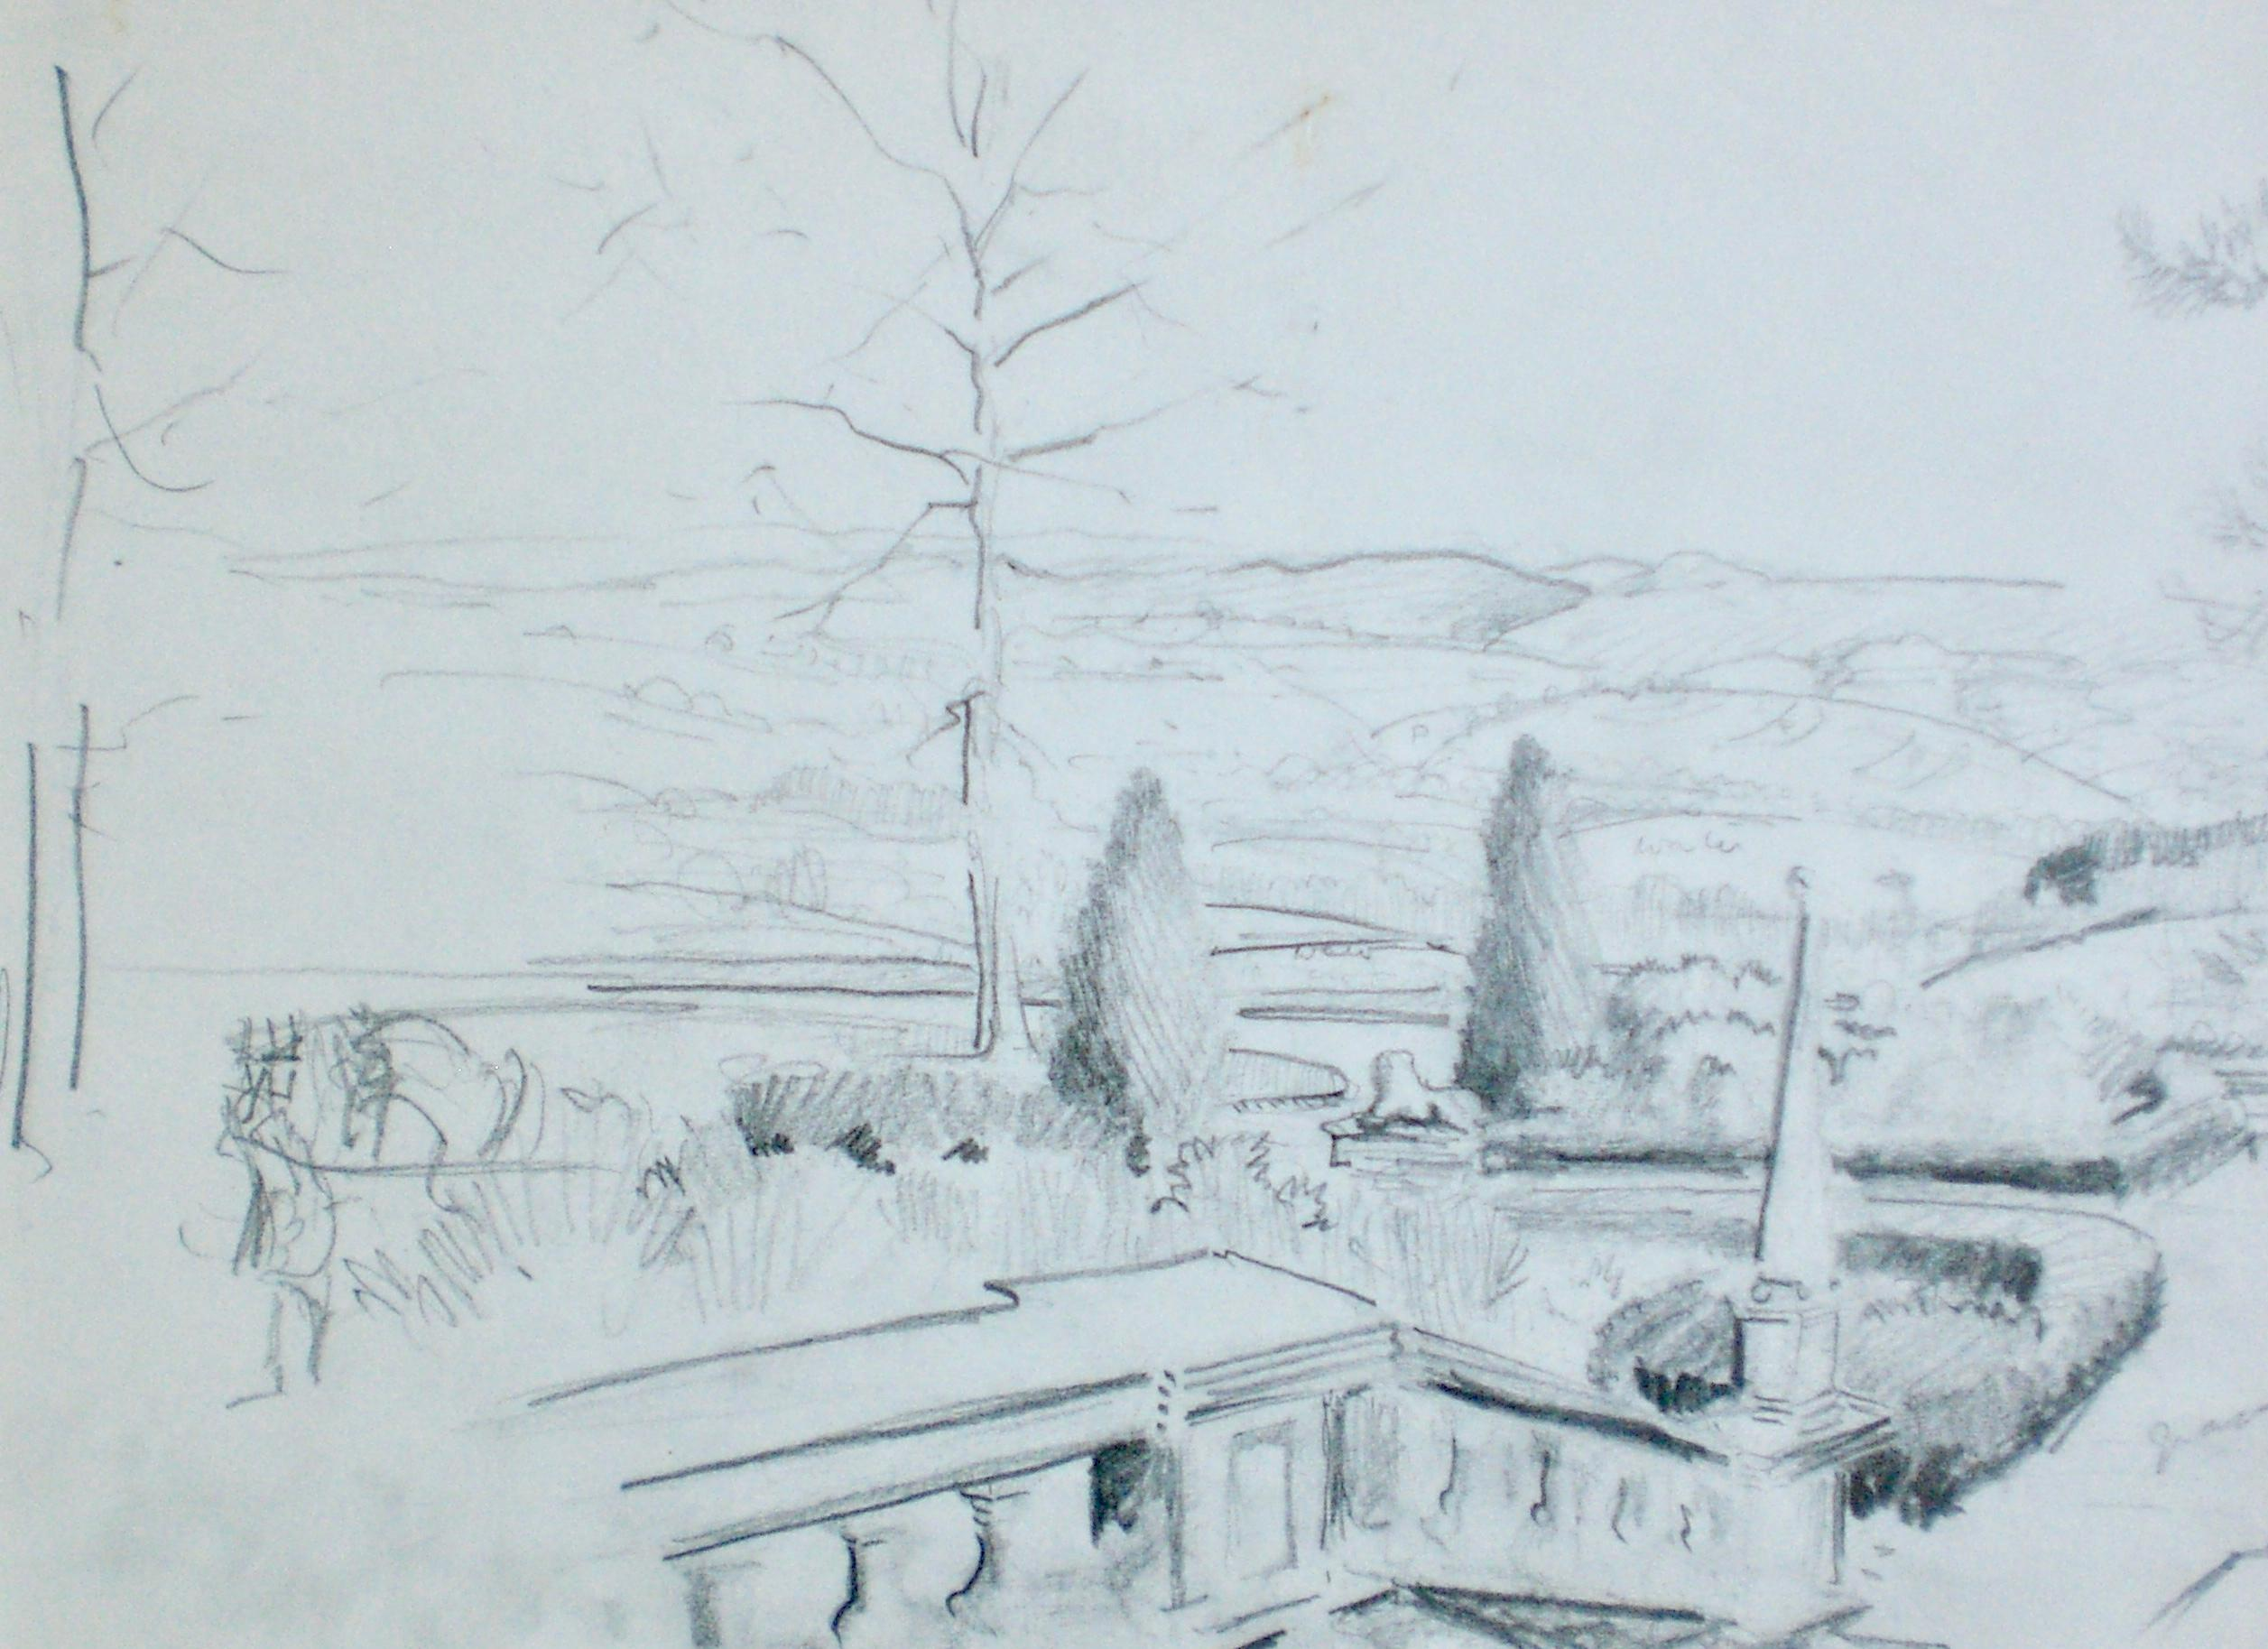 From the Terrace, Wethersfield, NY - 20th centuryBritish drawing by Michael Lyne